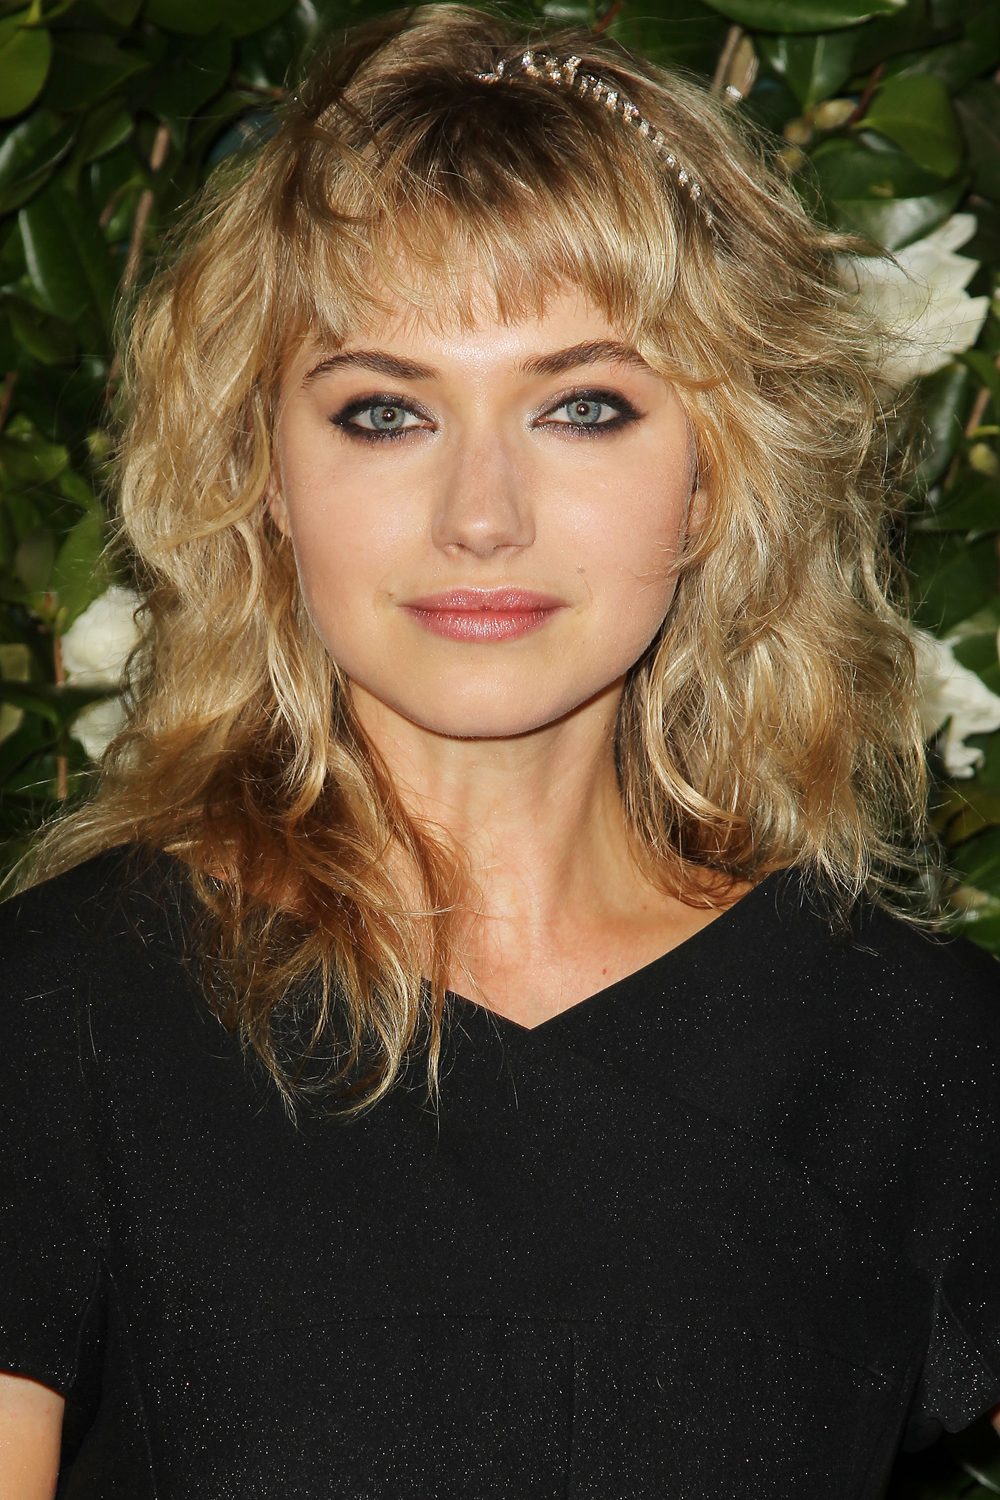 Terrific Hairstyles For Round Faces The Best Celebrity Styles To Inspire You Short Hairstyles Gunalazisus